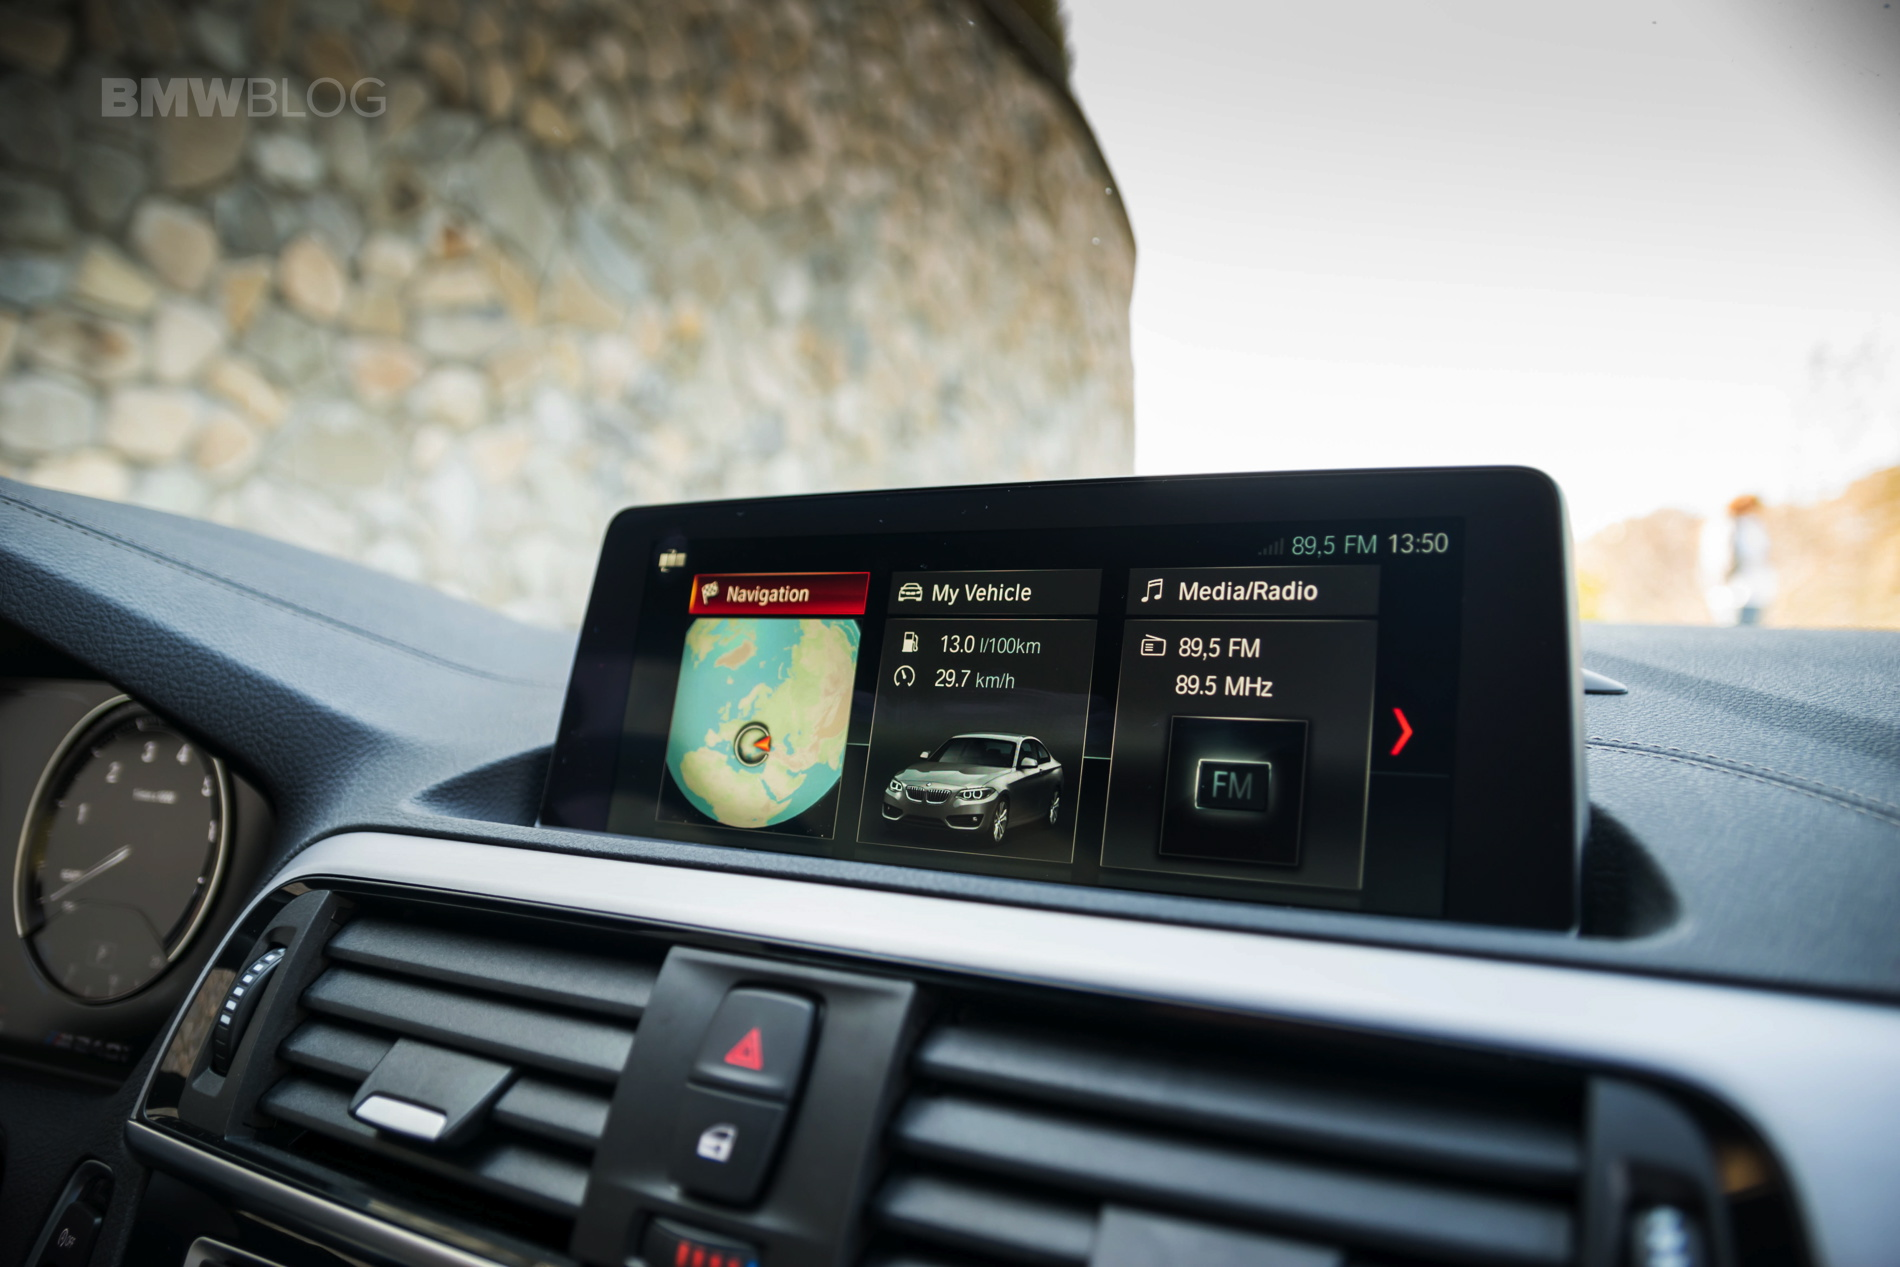 Video: A Detailed Look at the BMW iDrive 6 0 Infotainment System